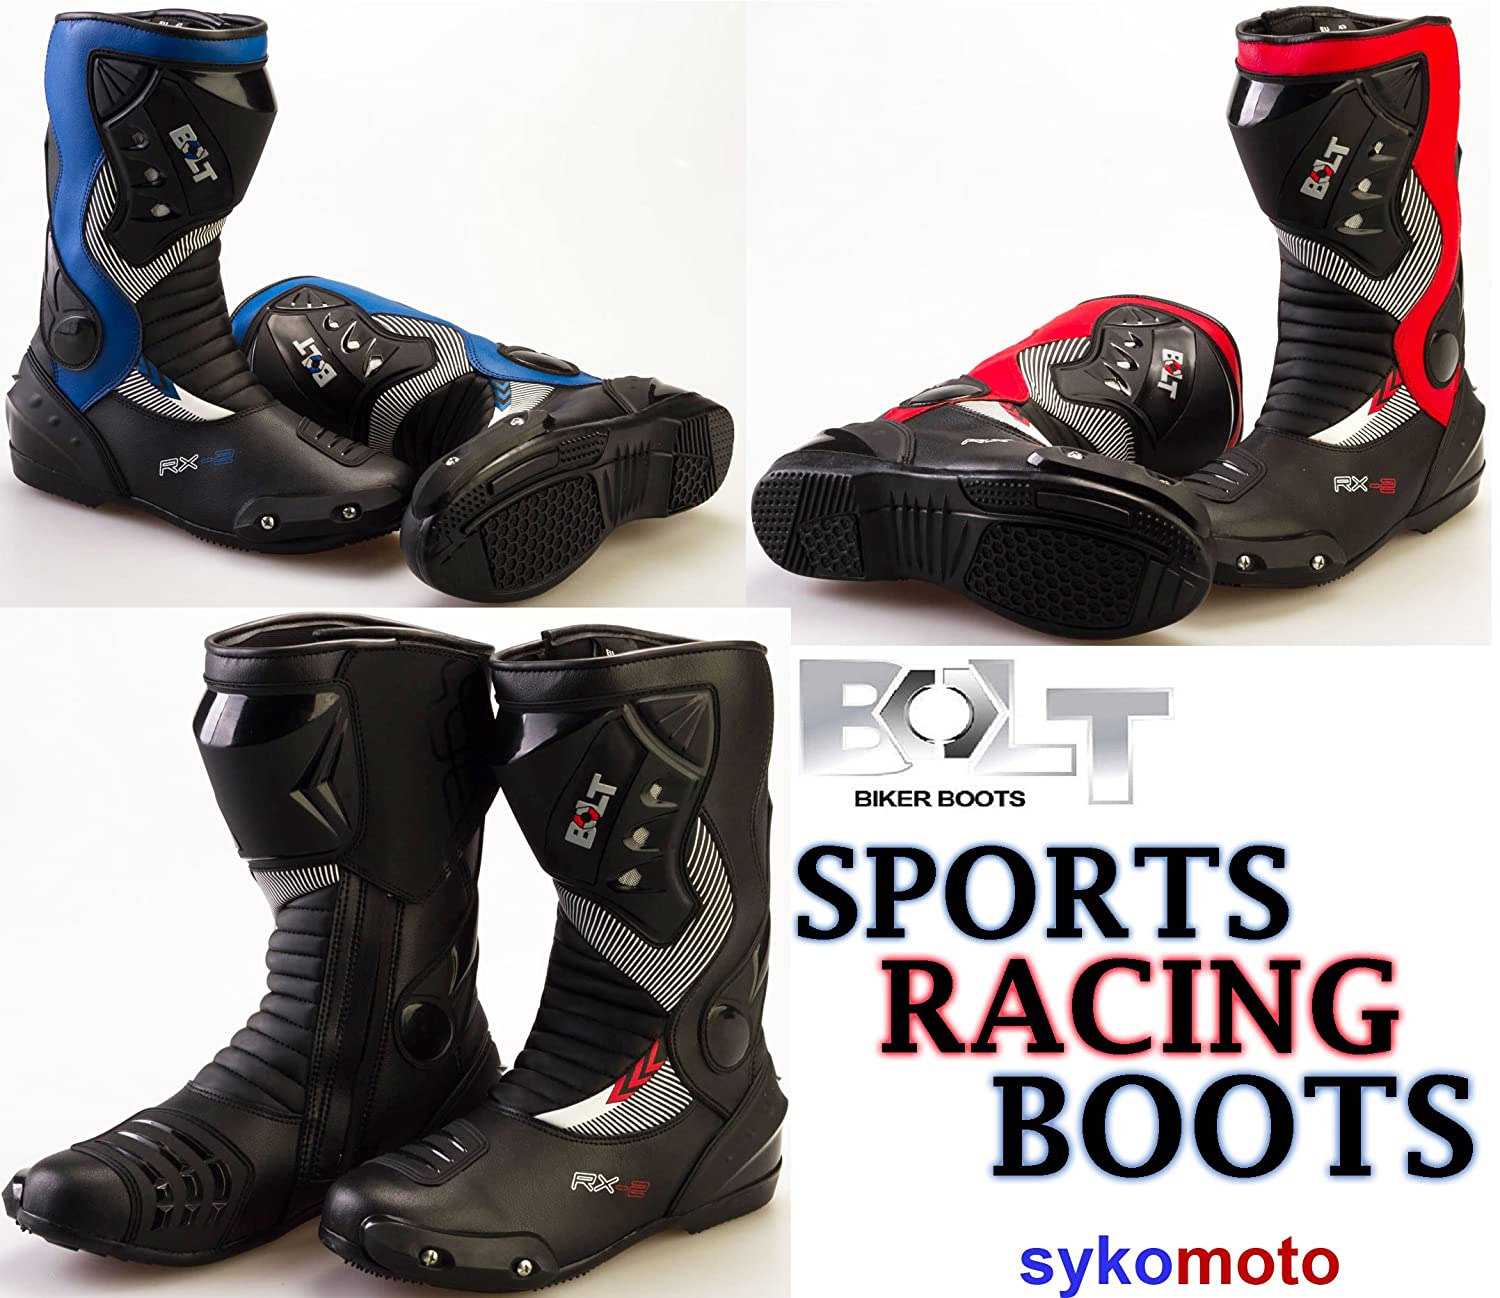 MOTORBIKE BOLT S12 RX2 ADULT SPORTS BOOTS Motorcycle Mens Waterproof Biker Protection Slider Racing Touring Armour Boots MOTOHART BOLT S12 RX2 BOOTS